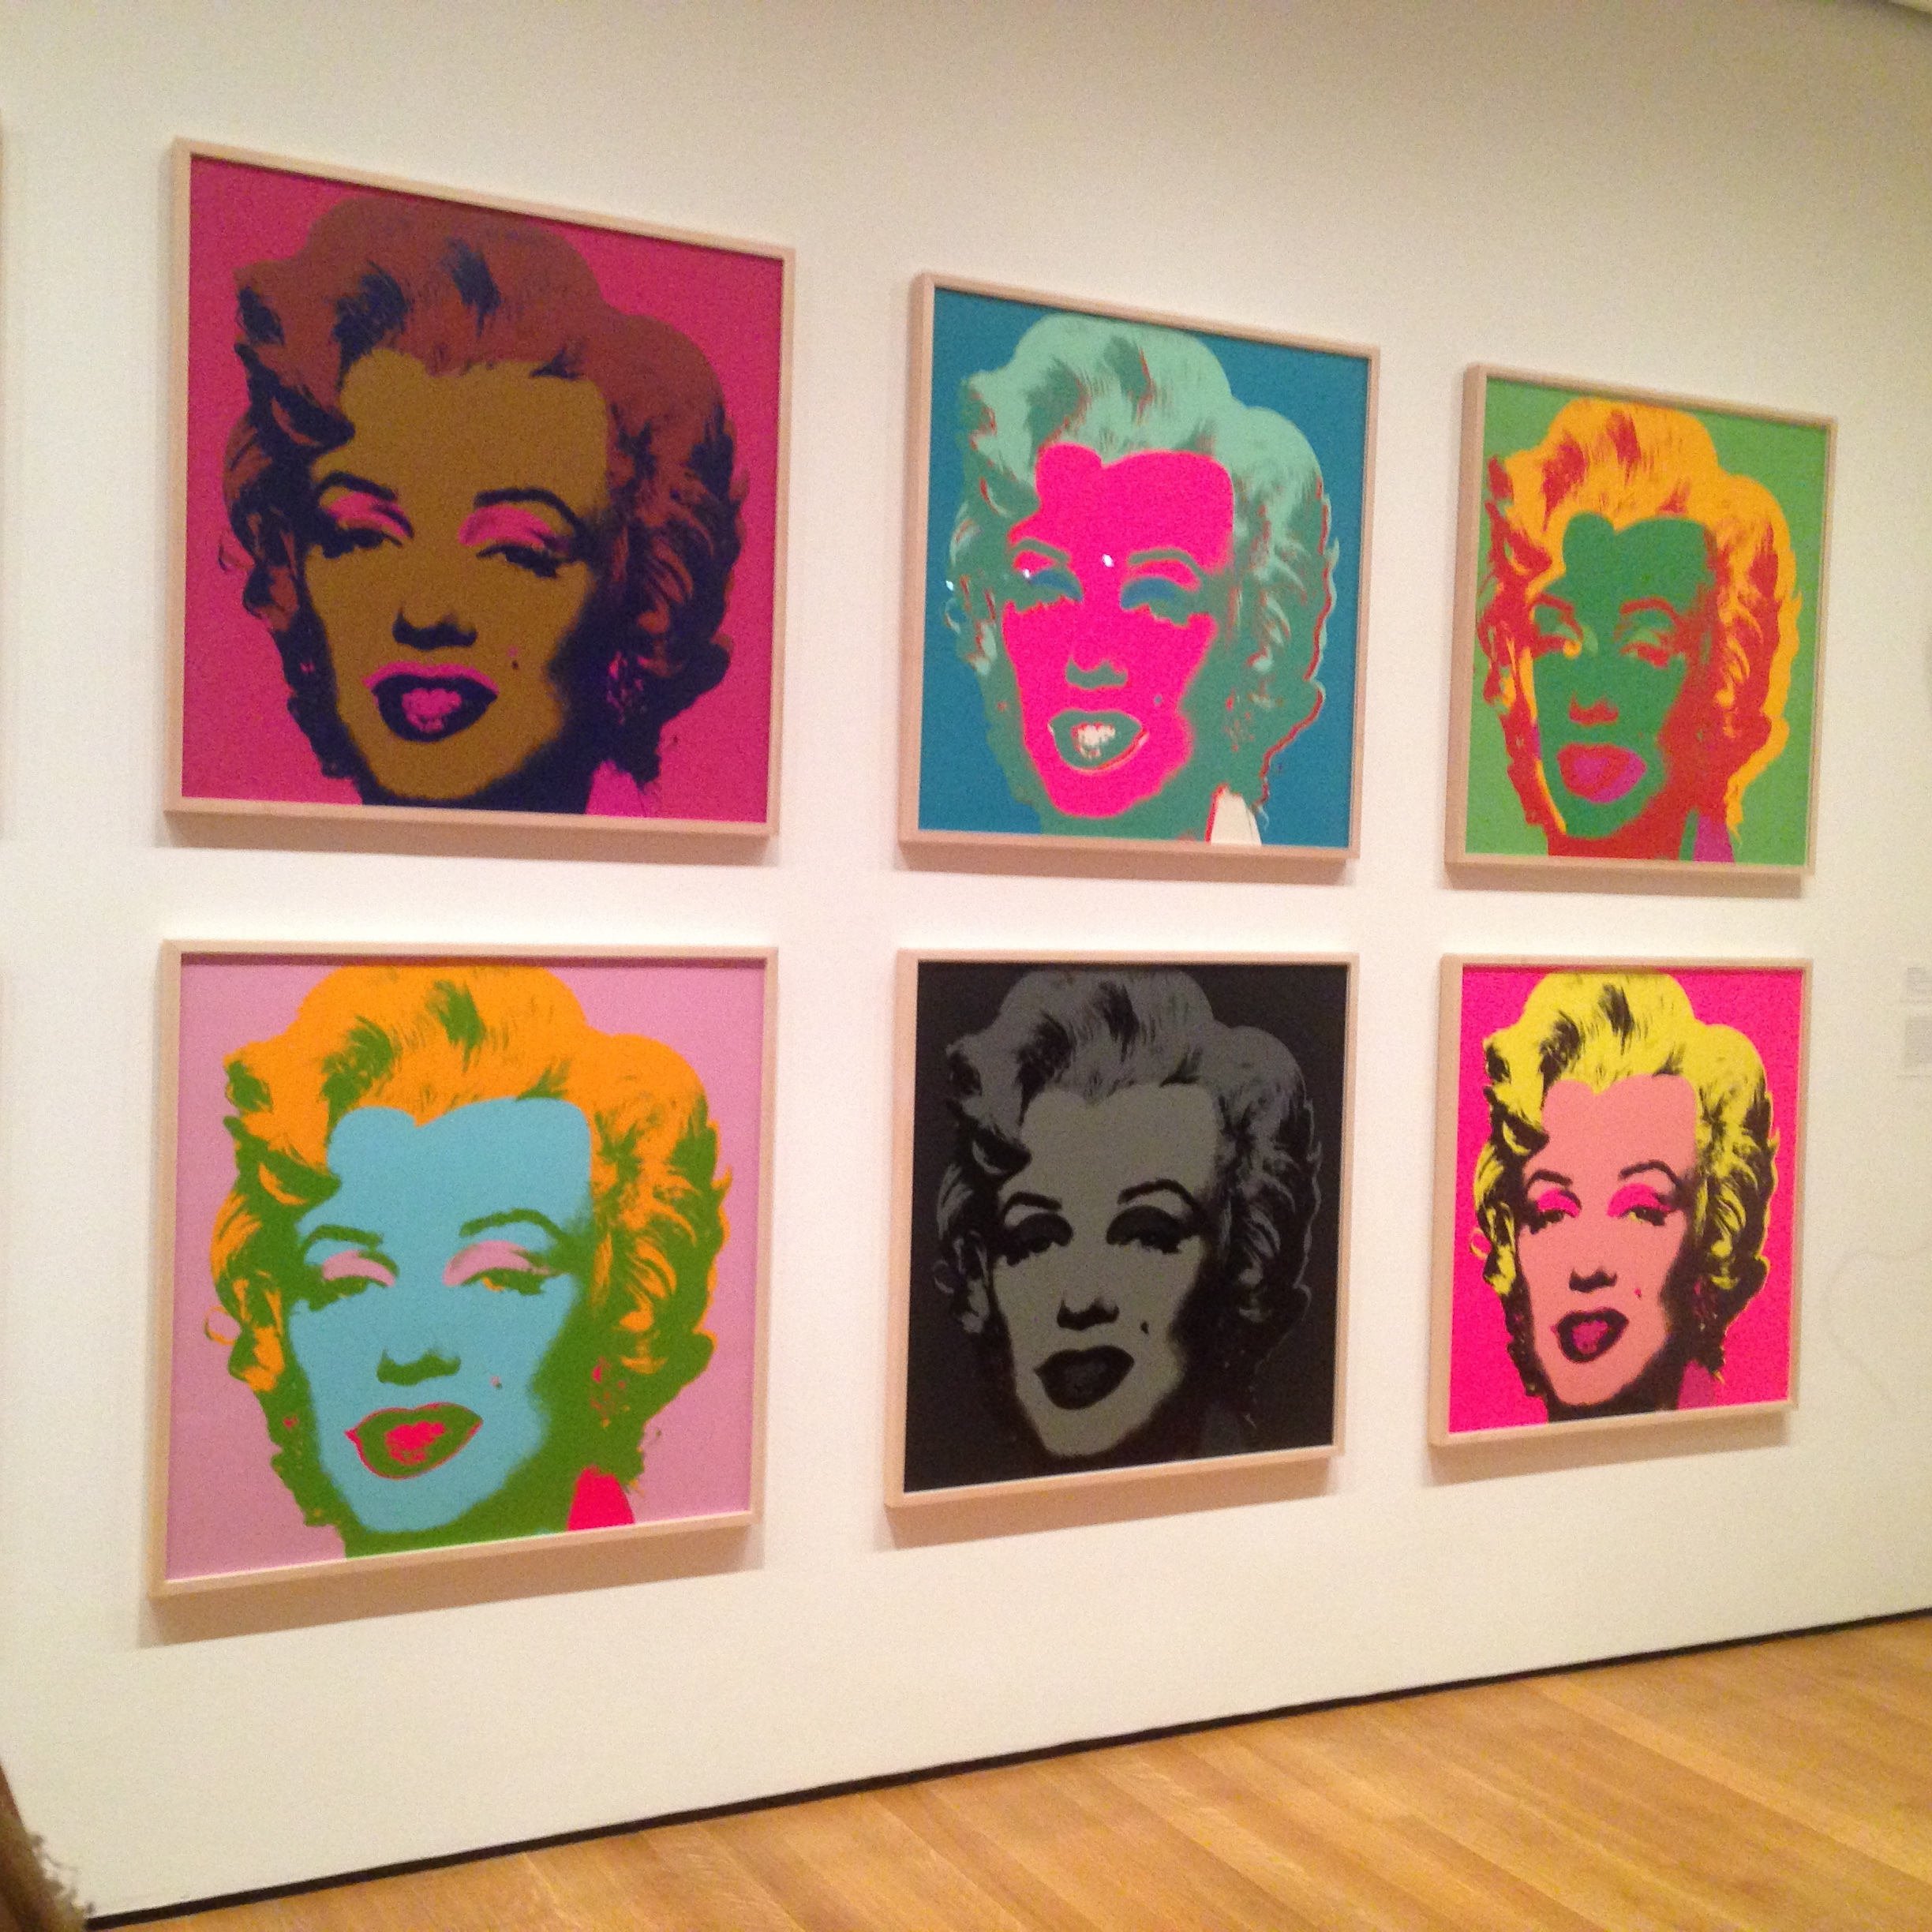 Andy Warhol - Museum of Modern Art (MOMA), NYC